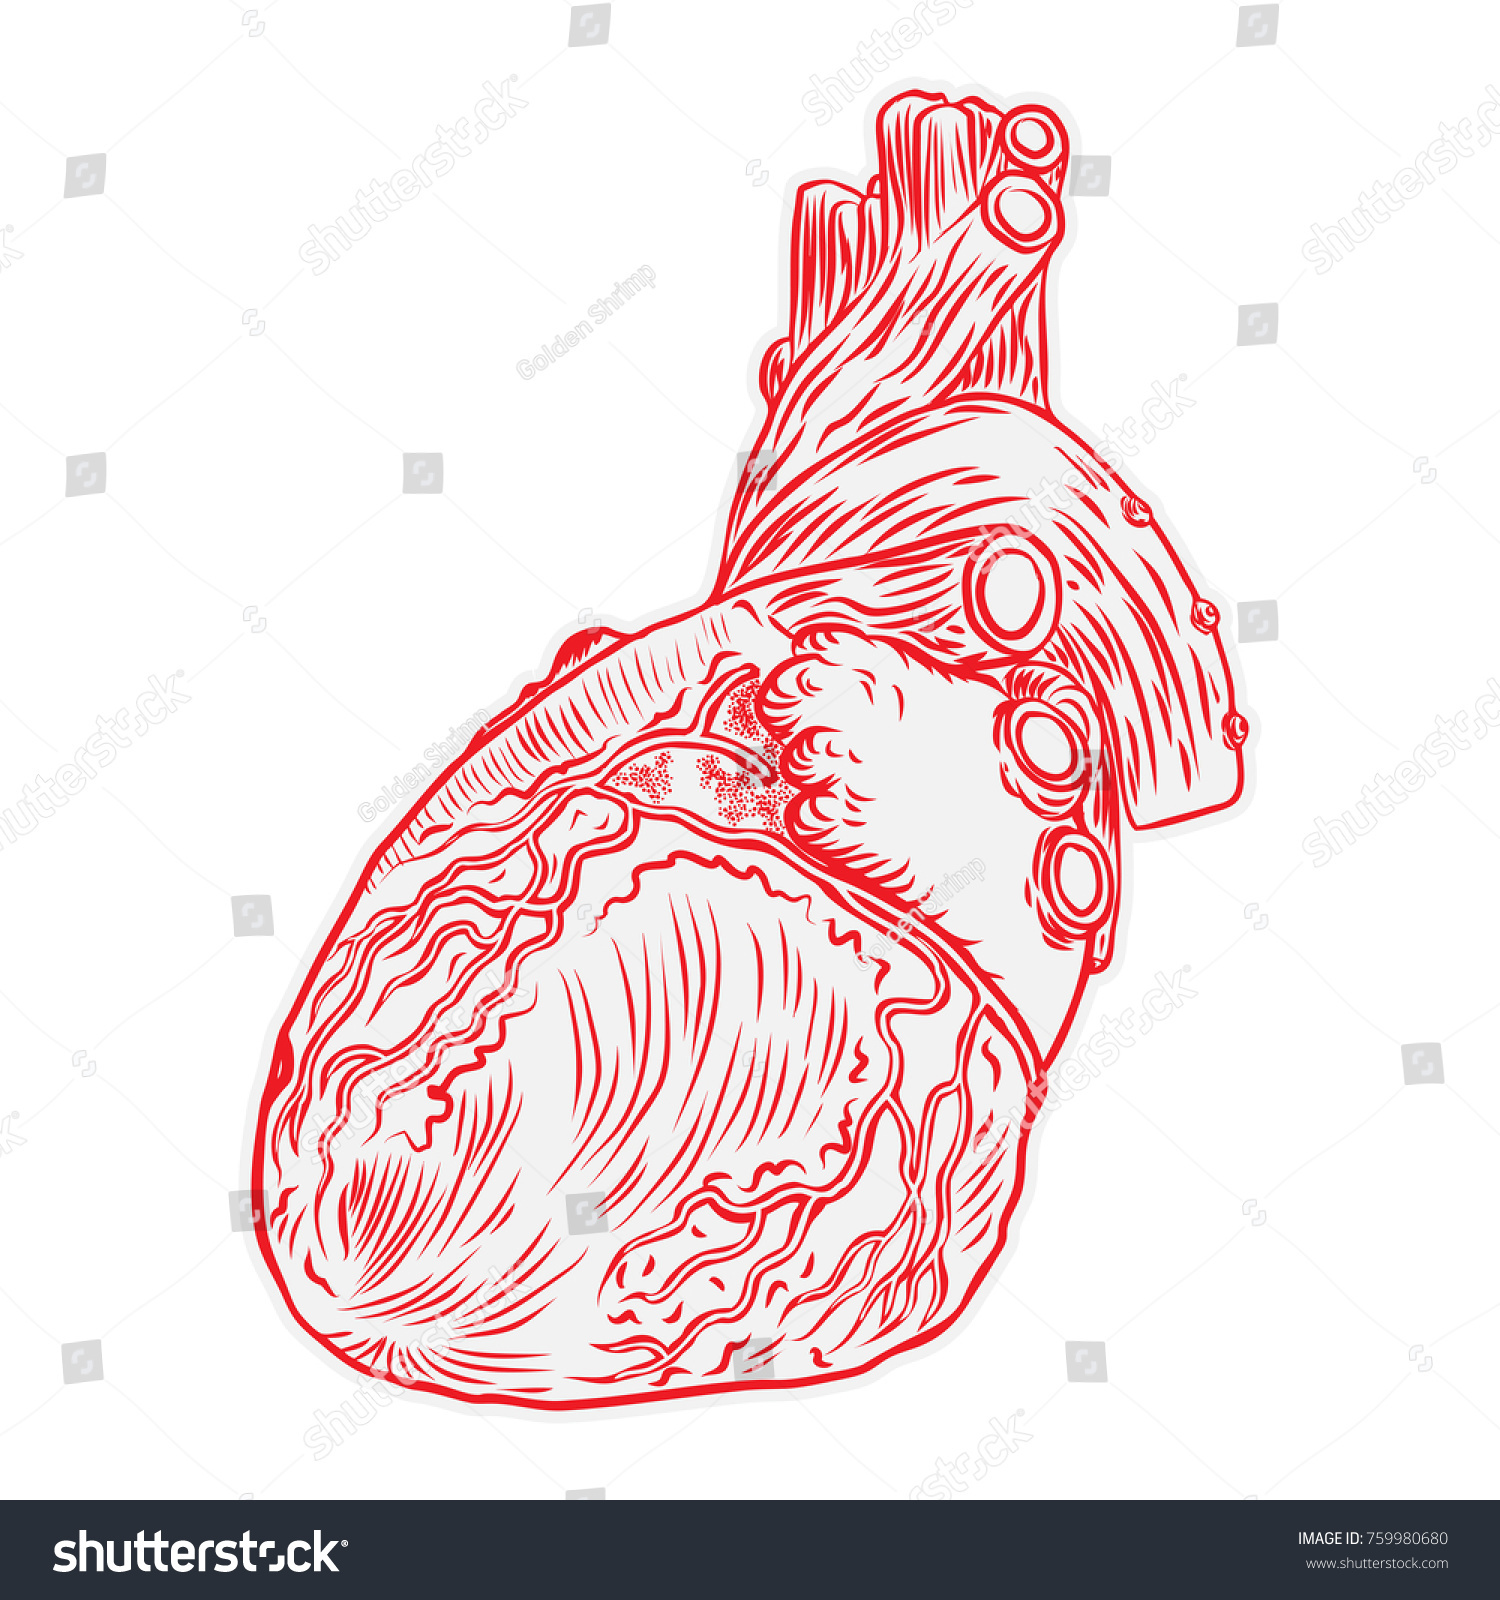 Heart Hand Drawn Isolated On White Stock Vector 759980680 - Shutterstock